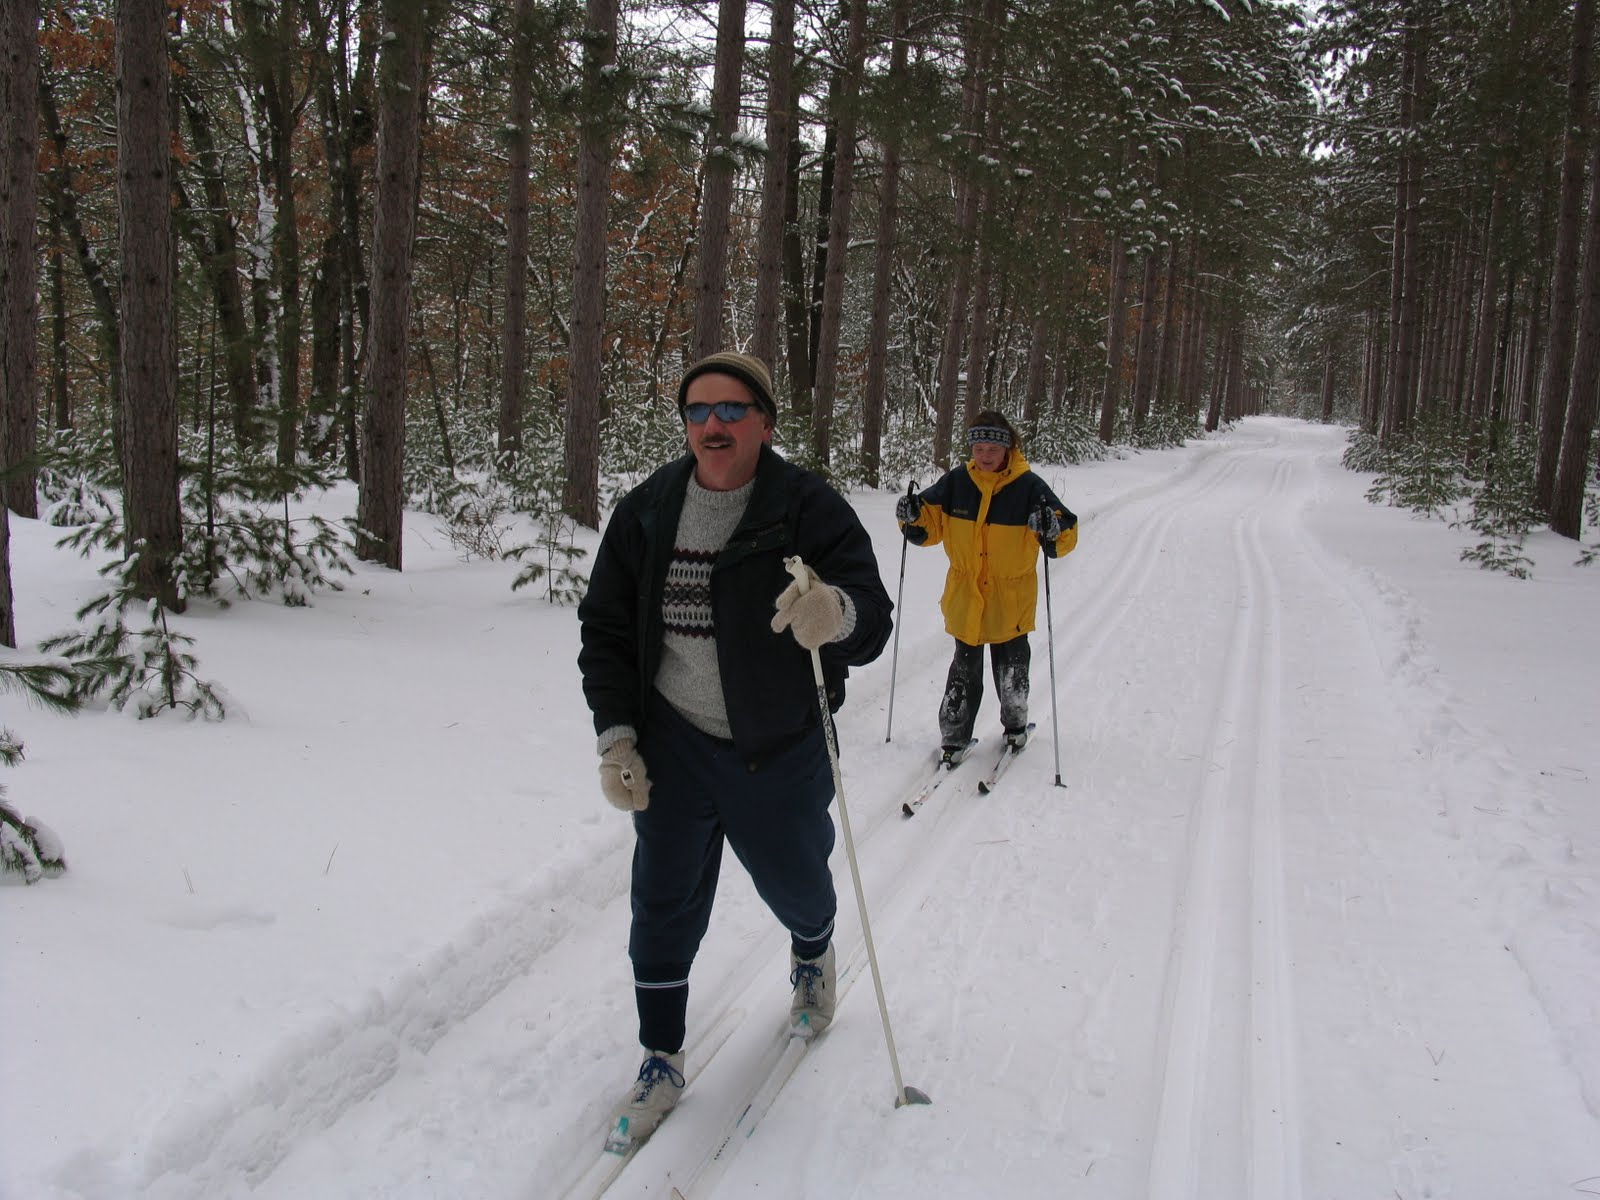 Skiing on the Plover River Ski Trails. Photo by Jim Buchholz